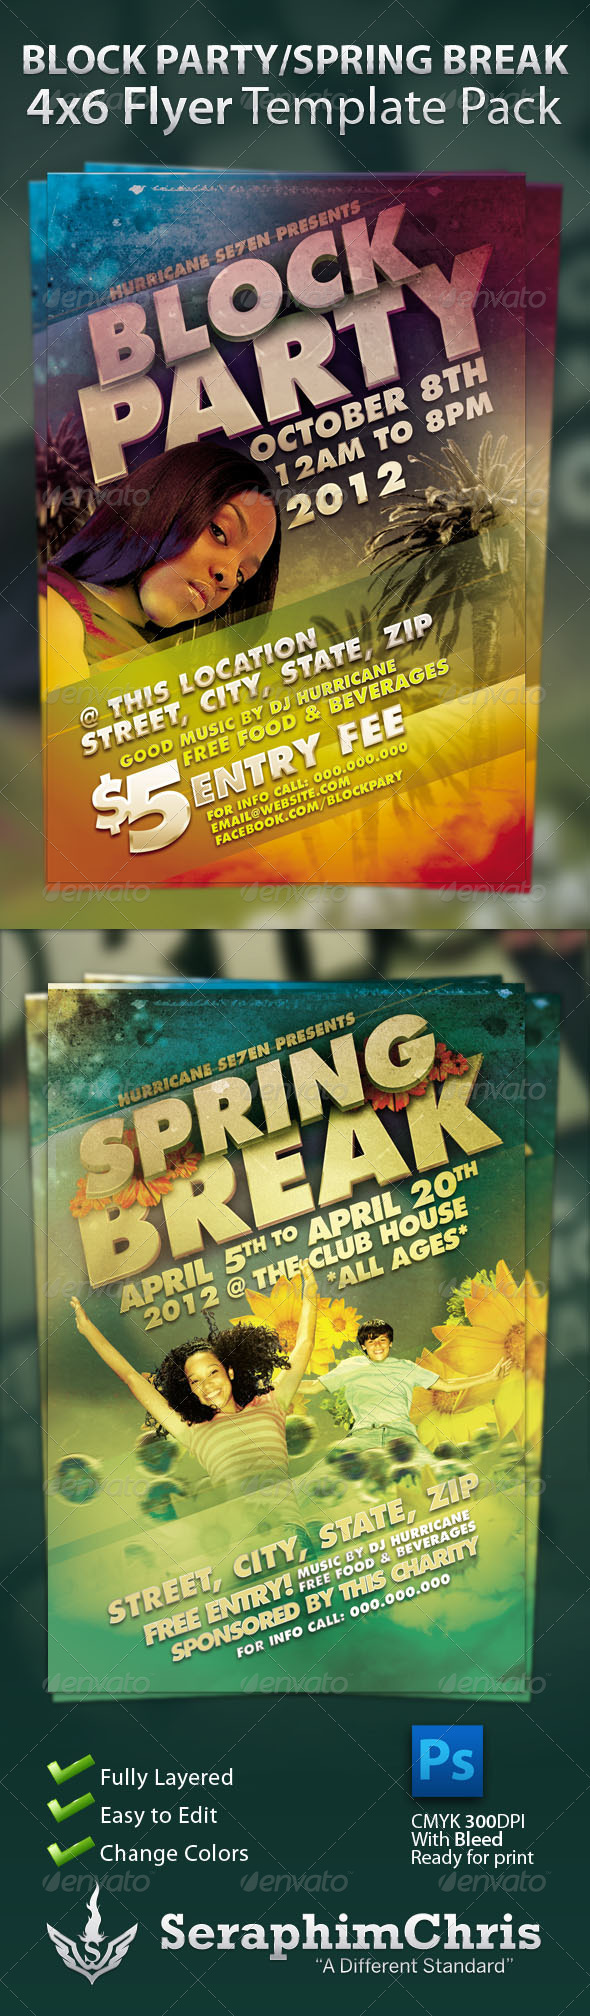 GraphicRiver Block Party and Sping Break Flyer Template Pack 535123